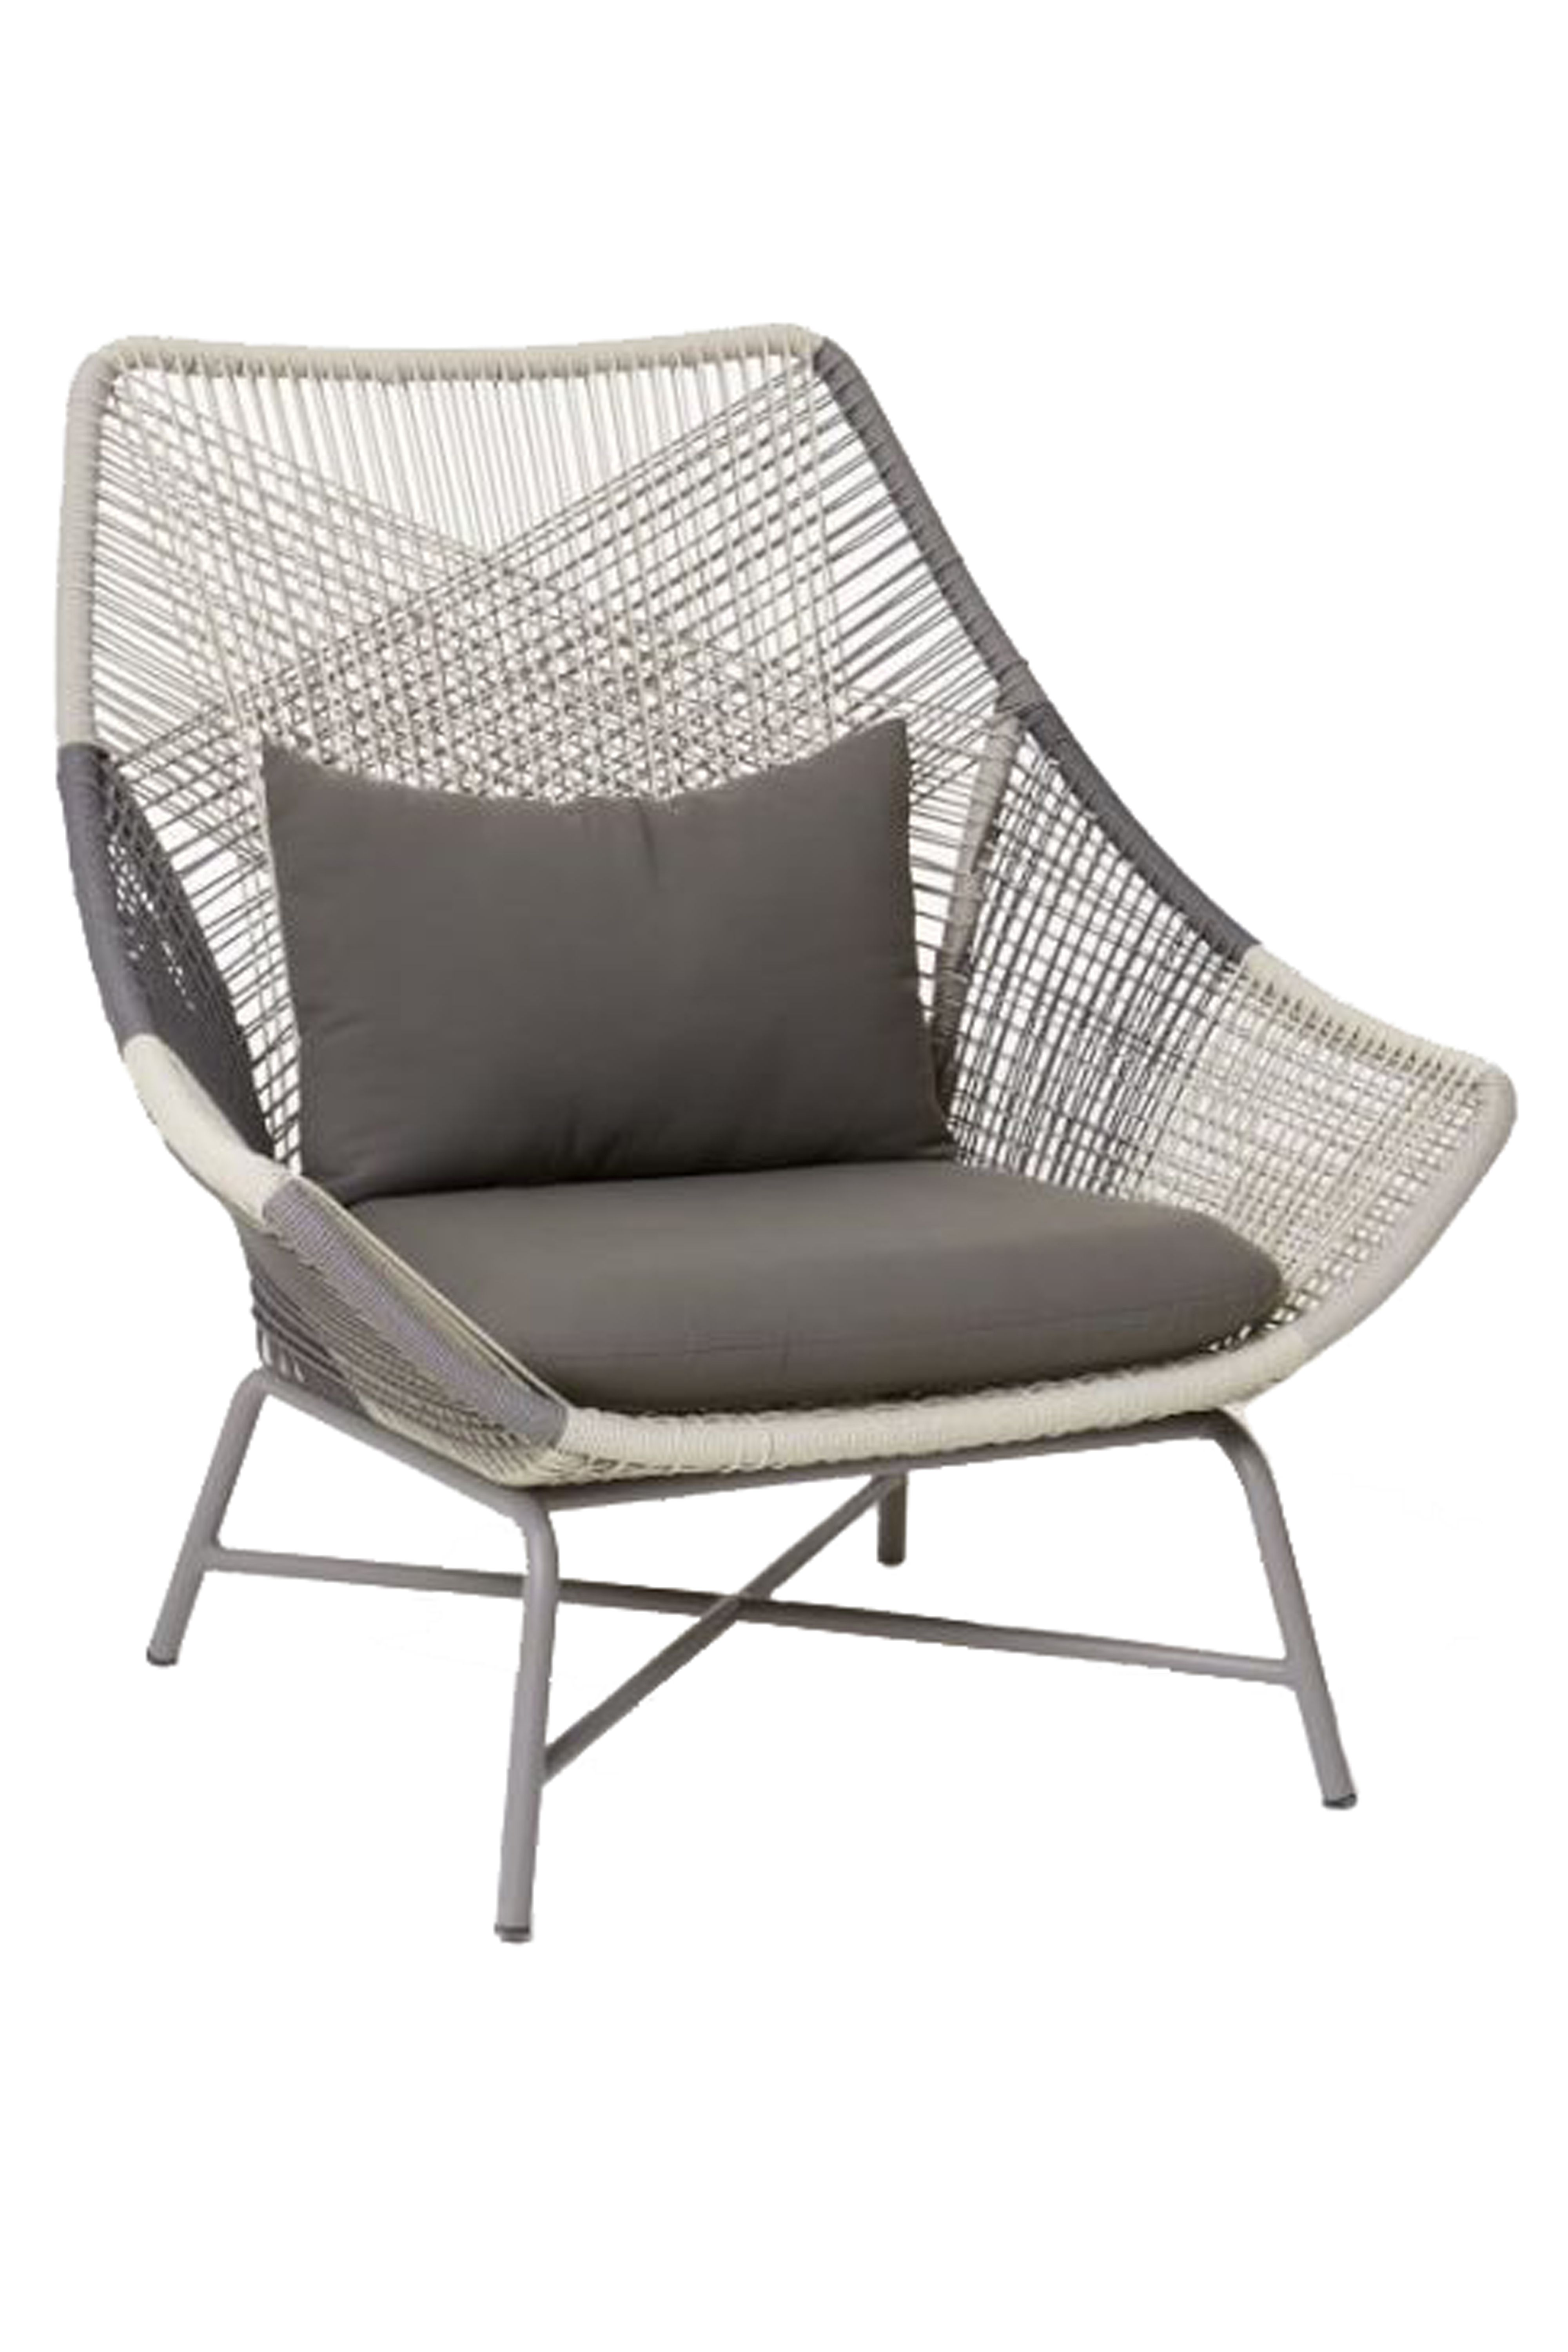 the 25 best garden chairs - stylish outdoor seating for gardens DJMKSWL